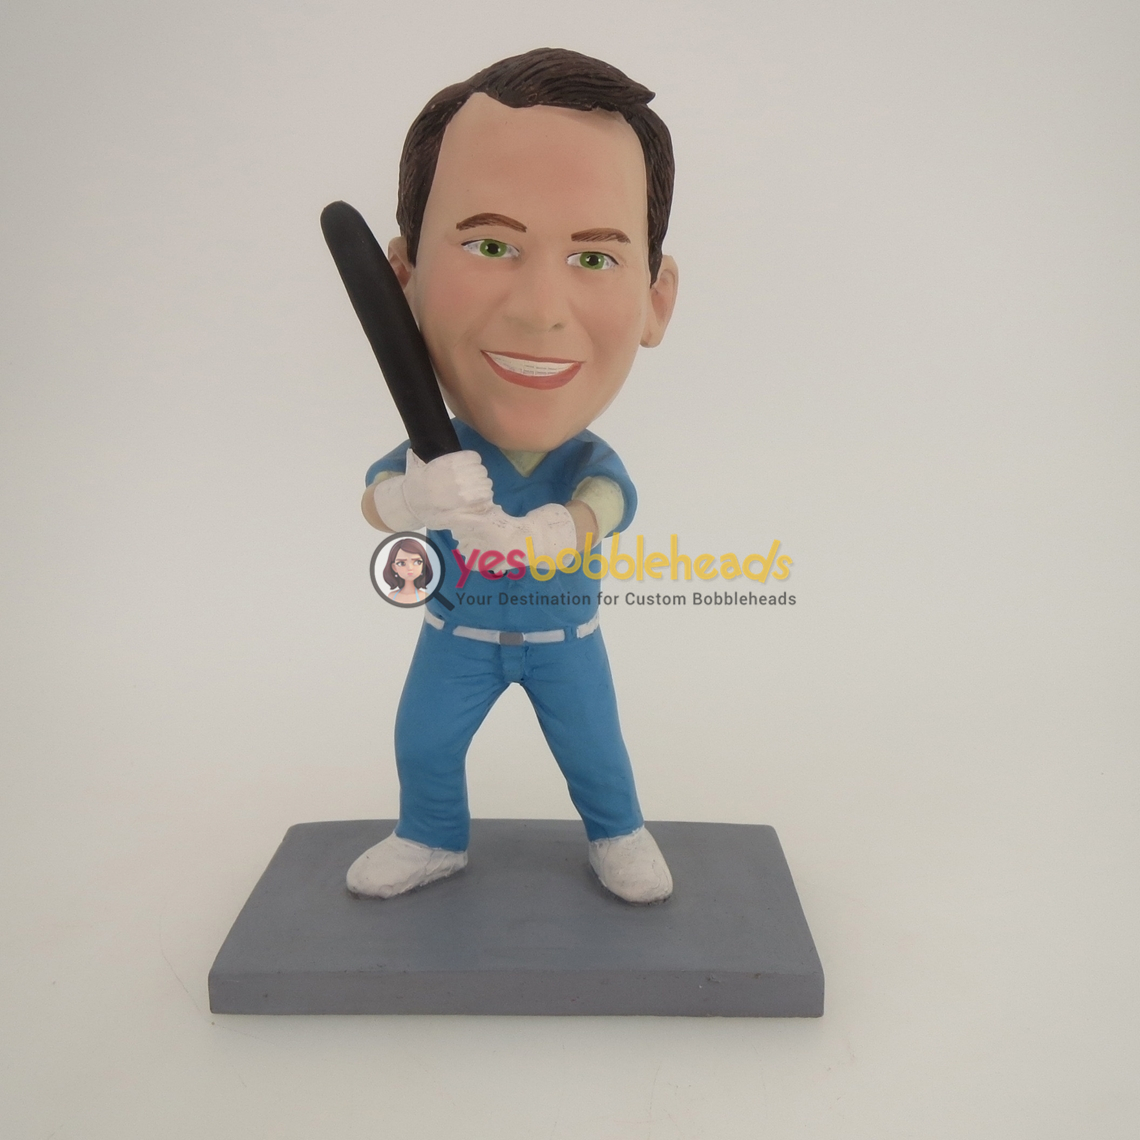 Picture of Custom Bobblehead Doll: Baseball Player Ready To Hit